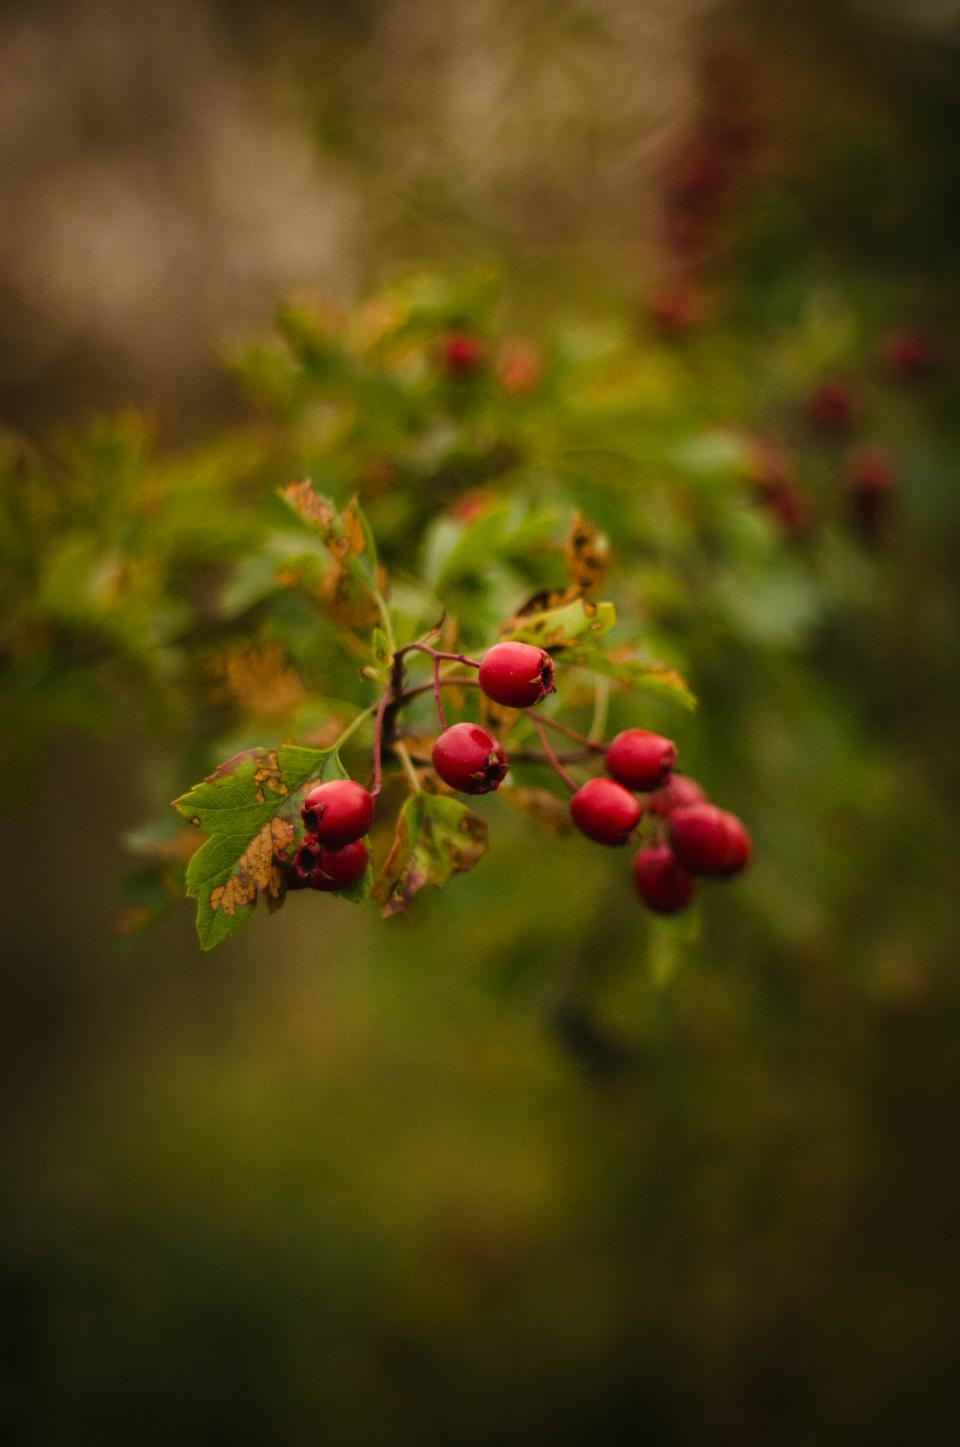 red fruit green leaf plant outdoor nature blur bokeh